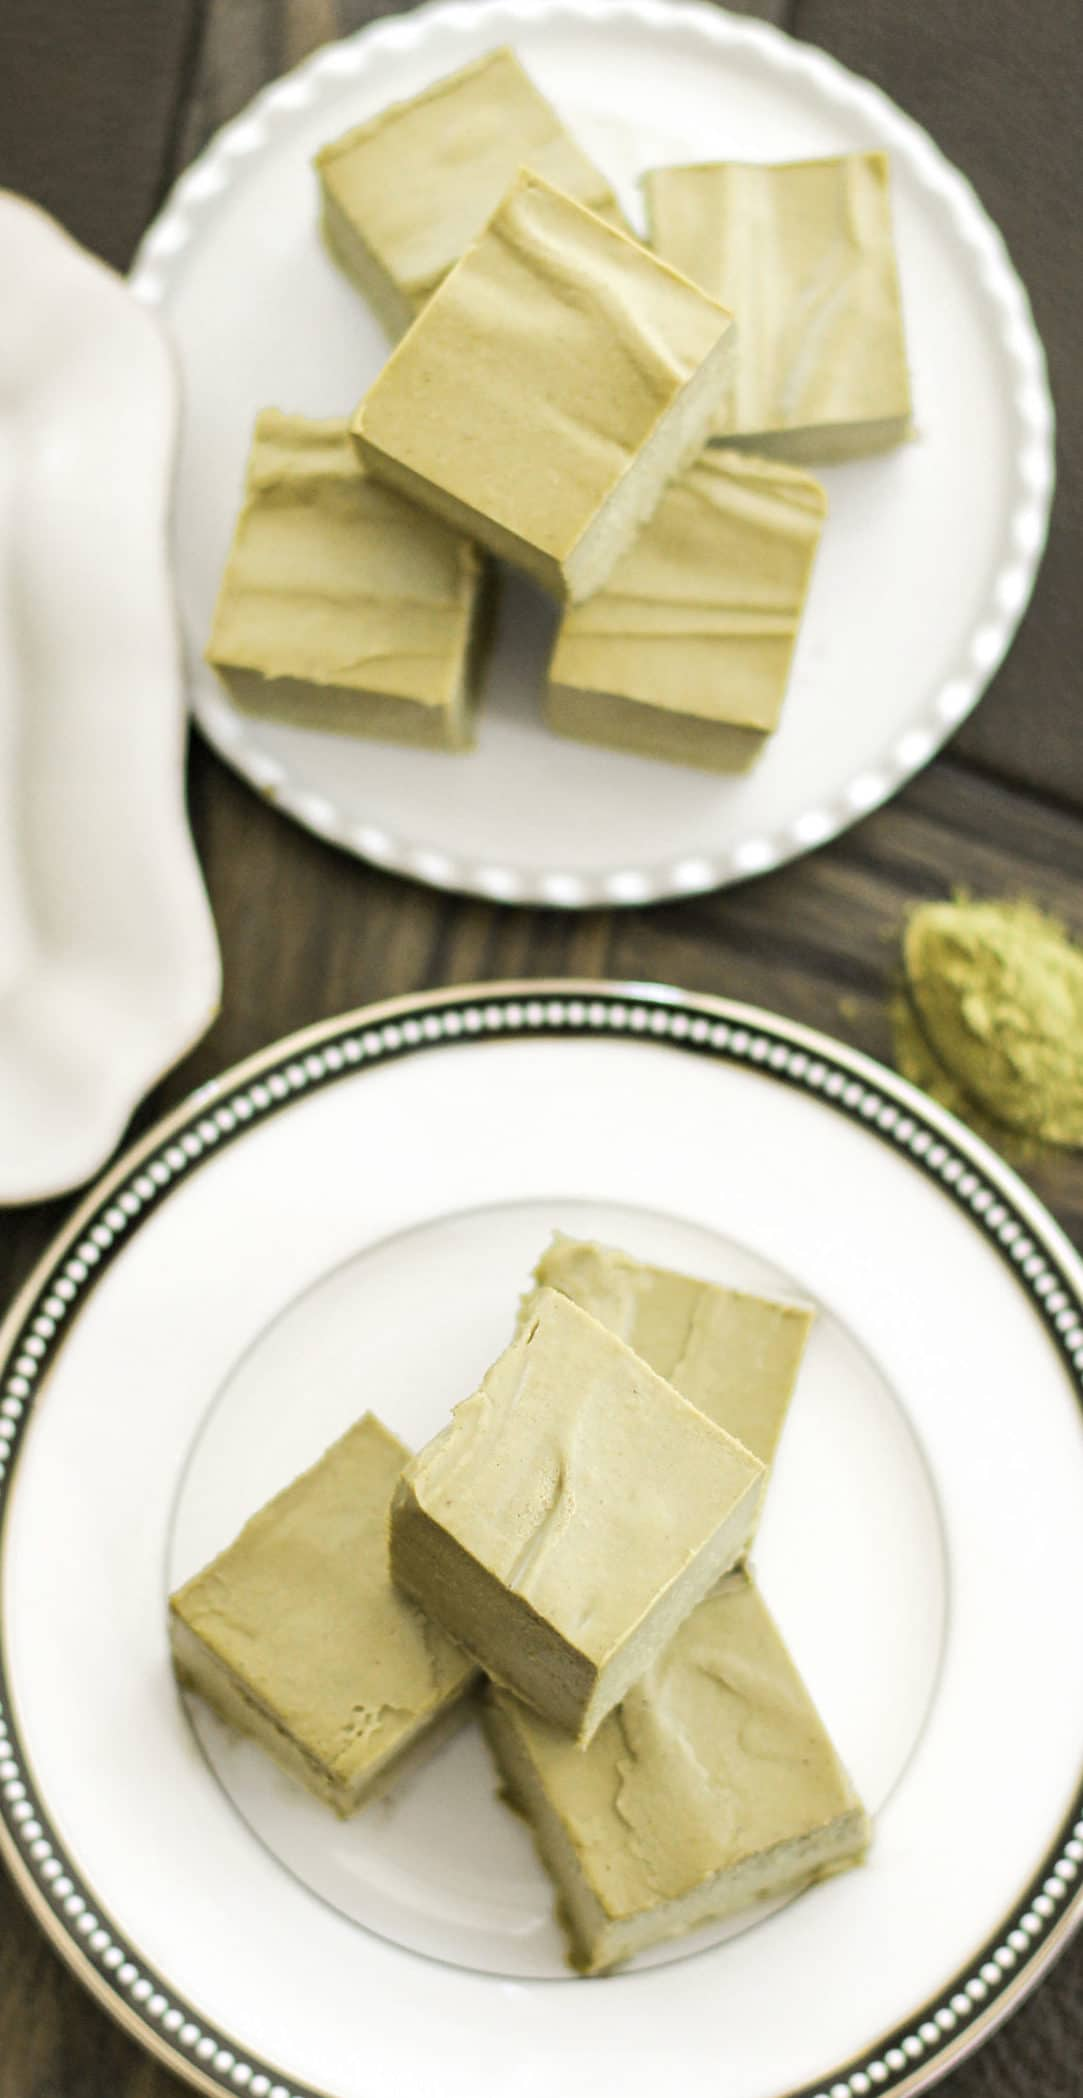 Healthy Raw Matcha Green Tea Fudge (no bake, sugar free, low carb, gluten free, dairy free, vegan) - Healthy Dessert Recipes at Desserts with Benefits